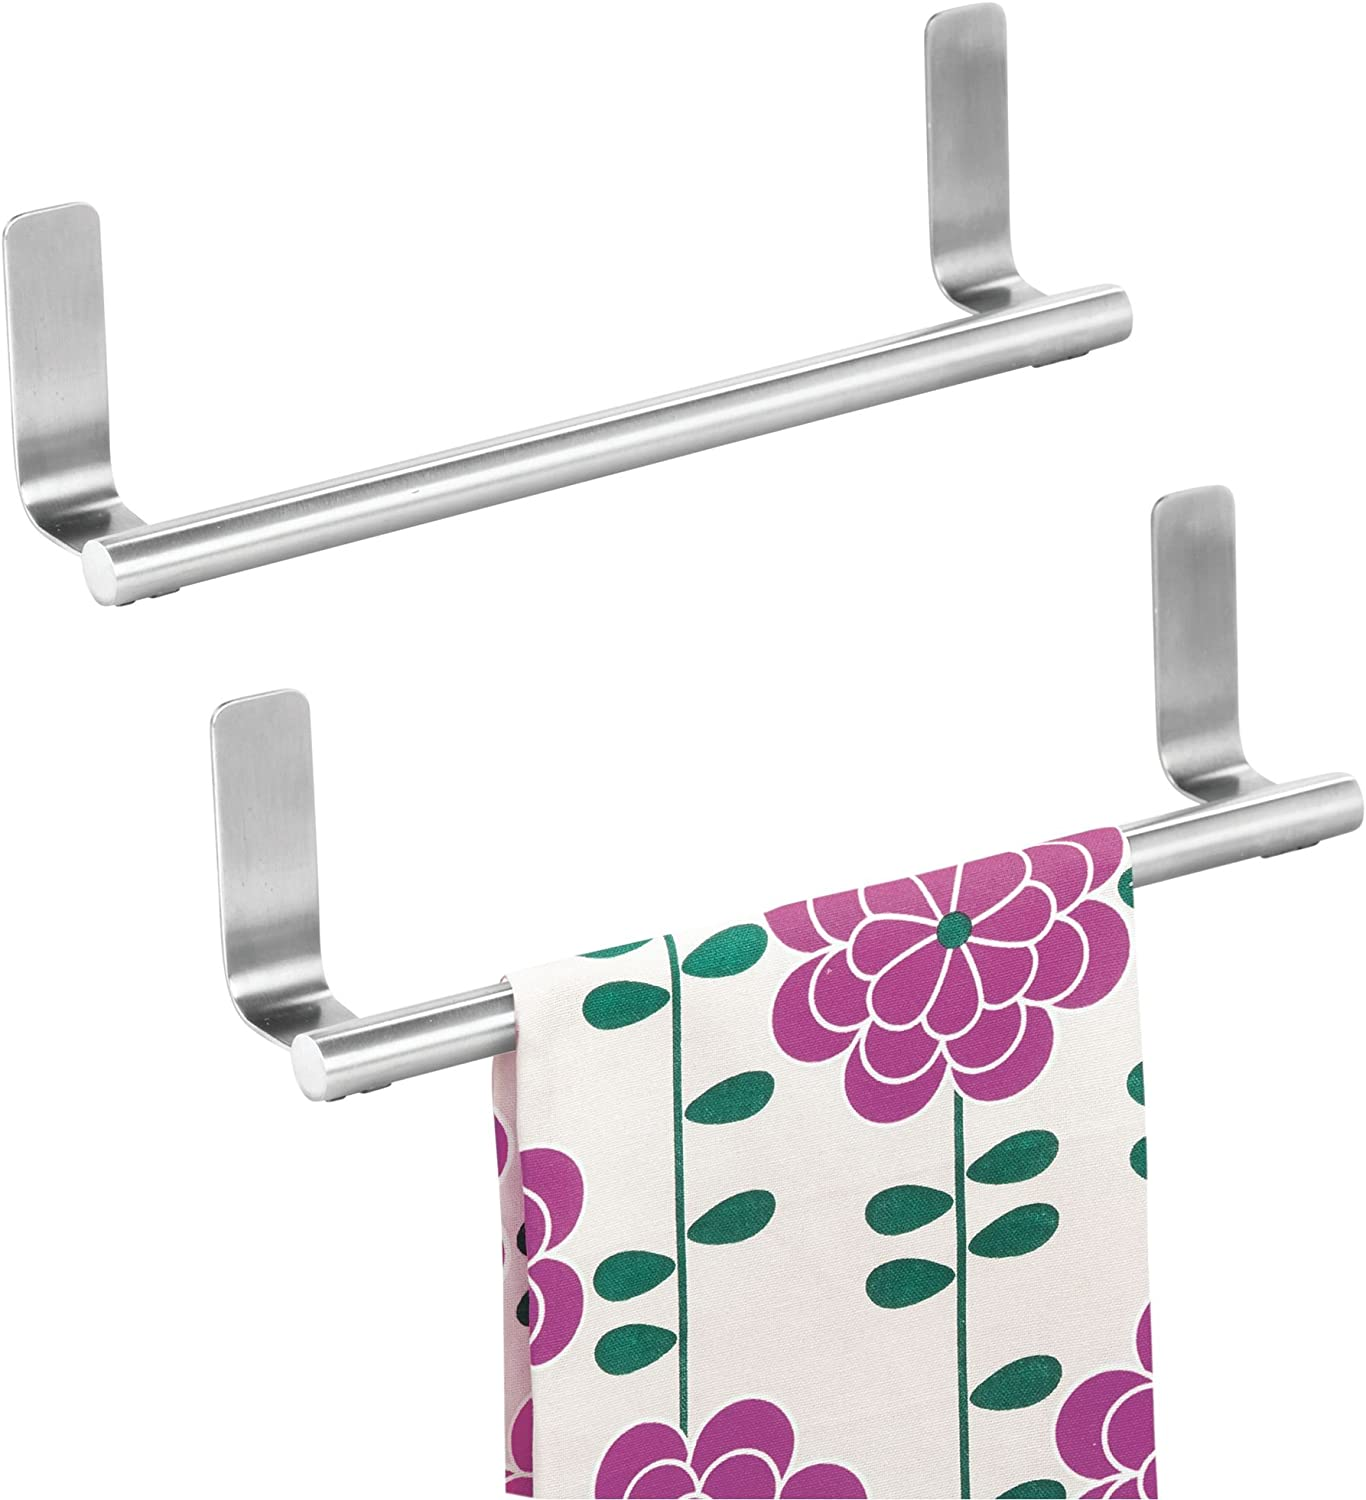 InterDesign Forma Self-Adhesive Towel Bar Holder for Bathroom or Kitchen Pack of 2 Brushed Stainless Steel